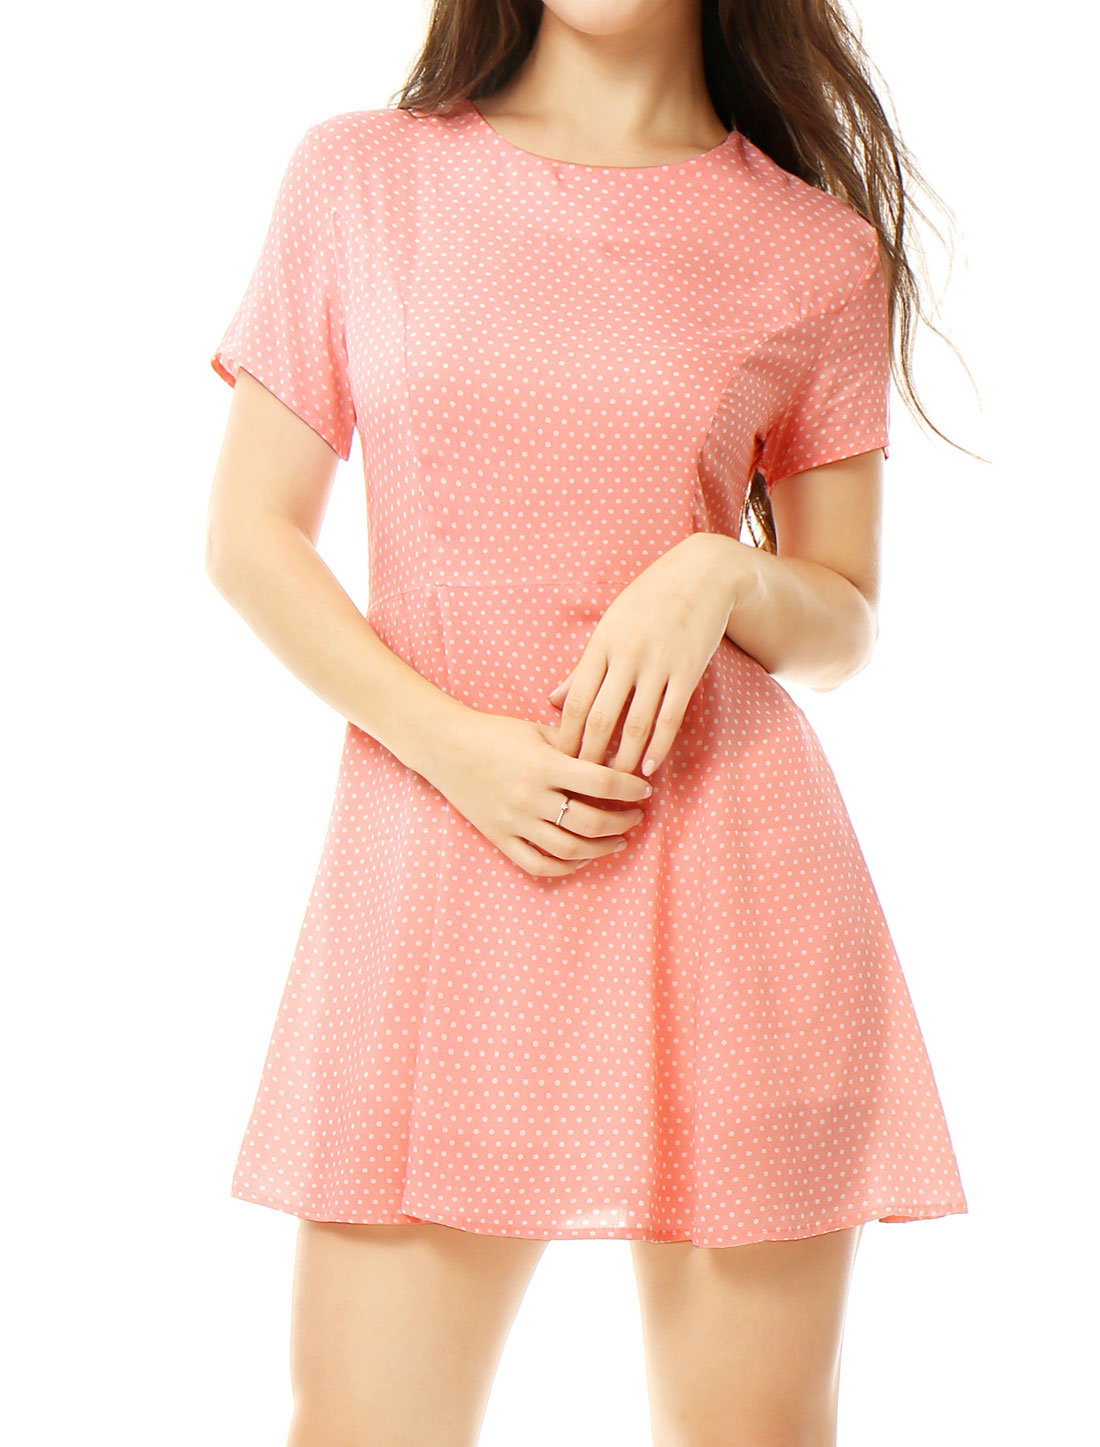 Women Polka Dots Lace Up Back Short Sleeves A Line Dress Pink M